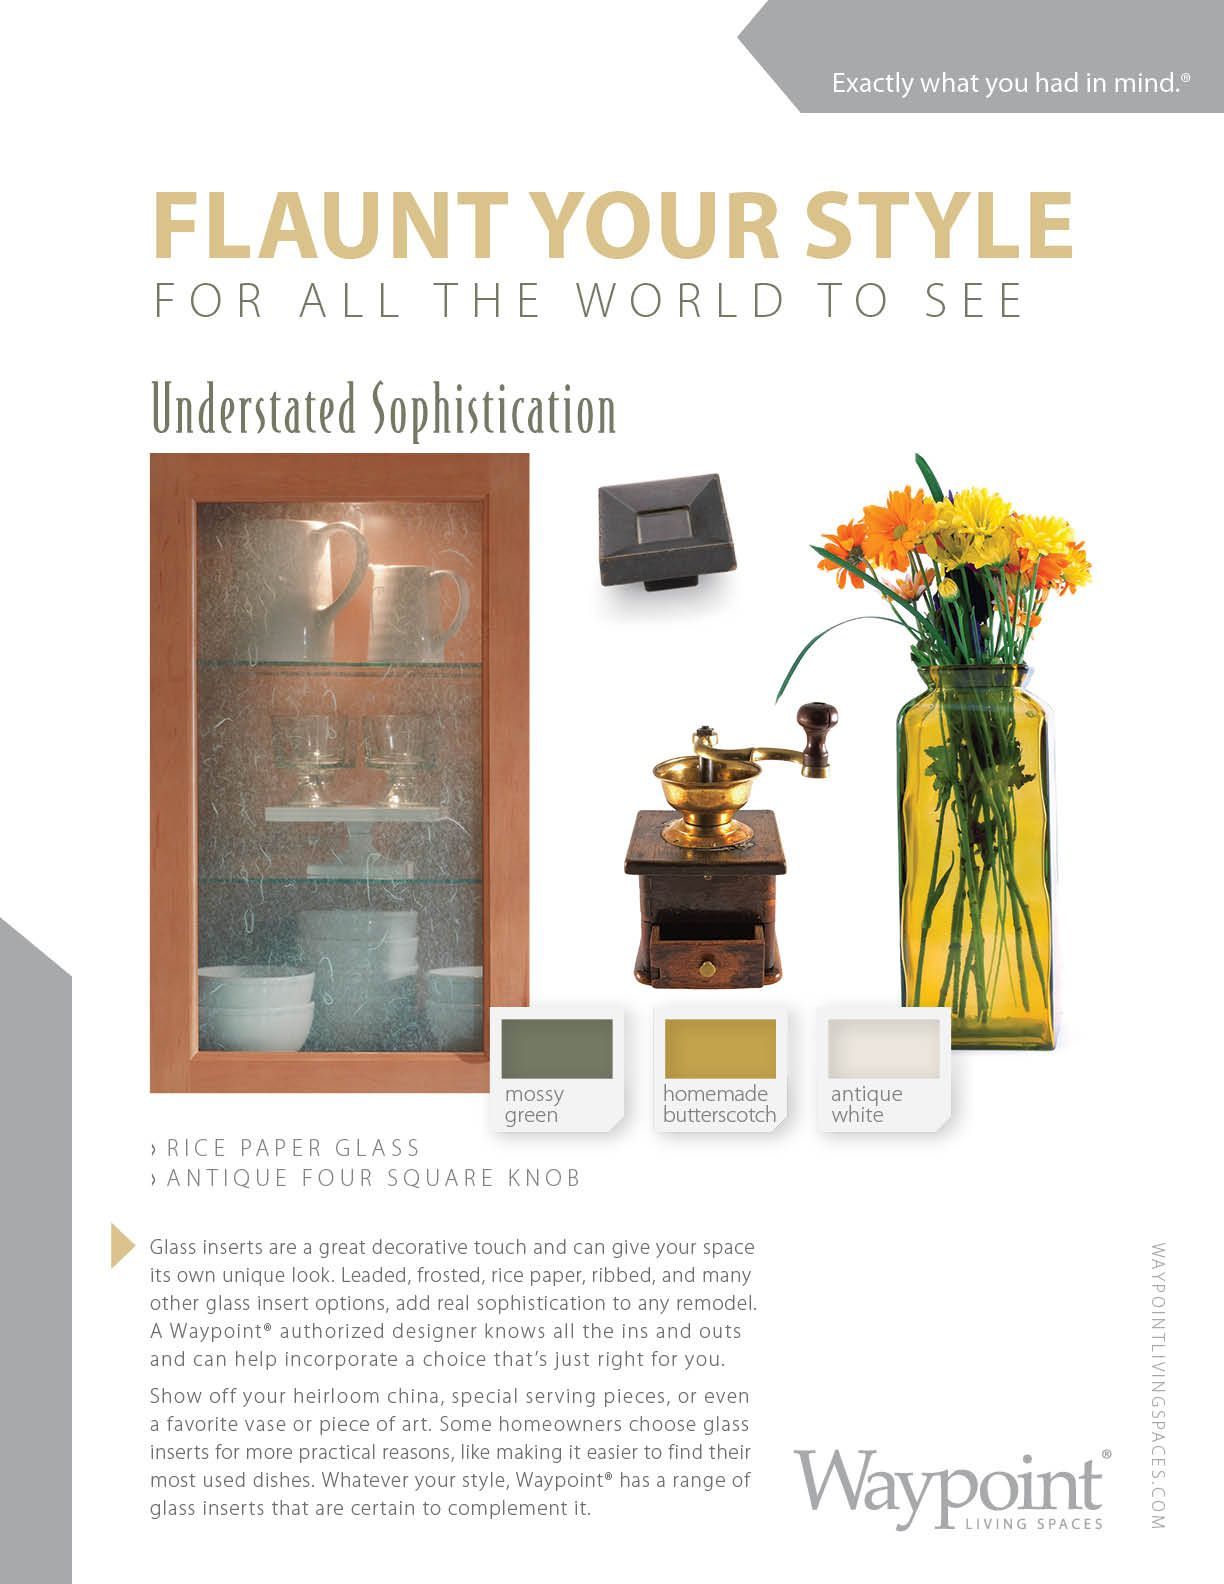 Waypoint glass cabinet door styles. | Flaunt Your Style for All the ...